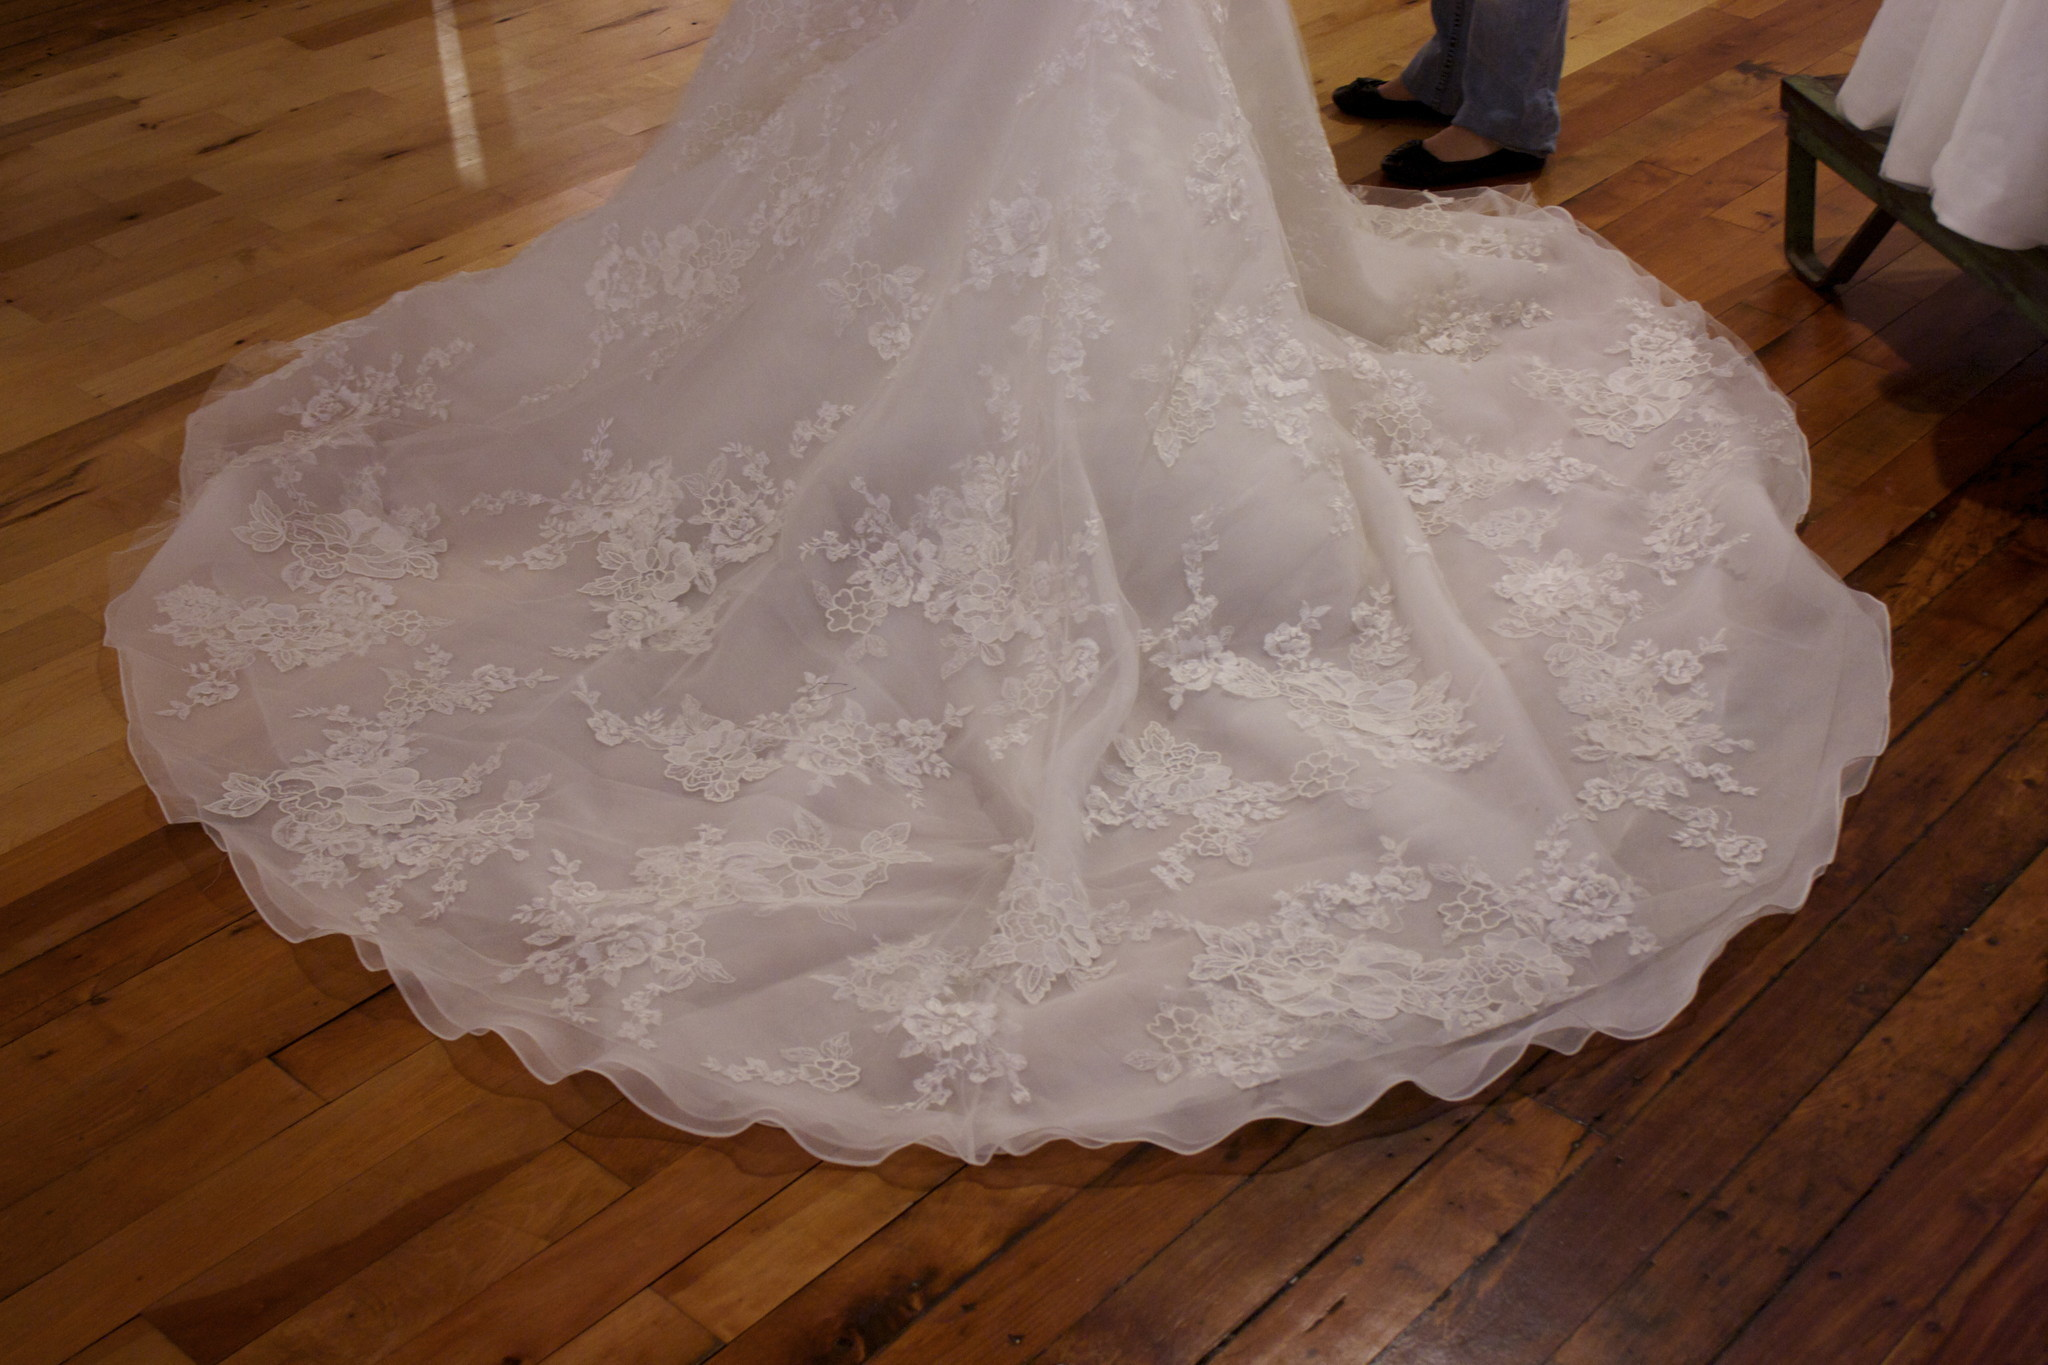 Pictures operation wedding gown hartford courant for Free wedding dresses for military brides